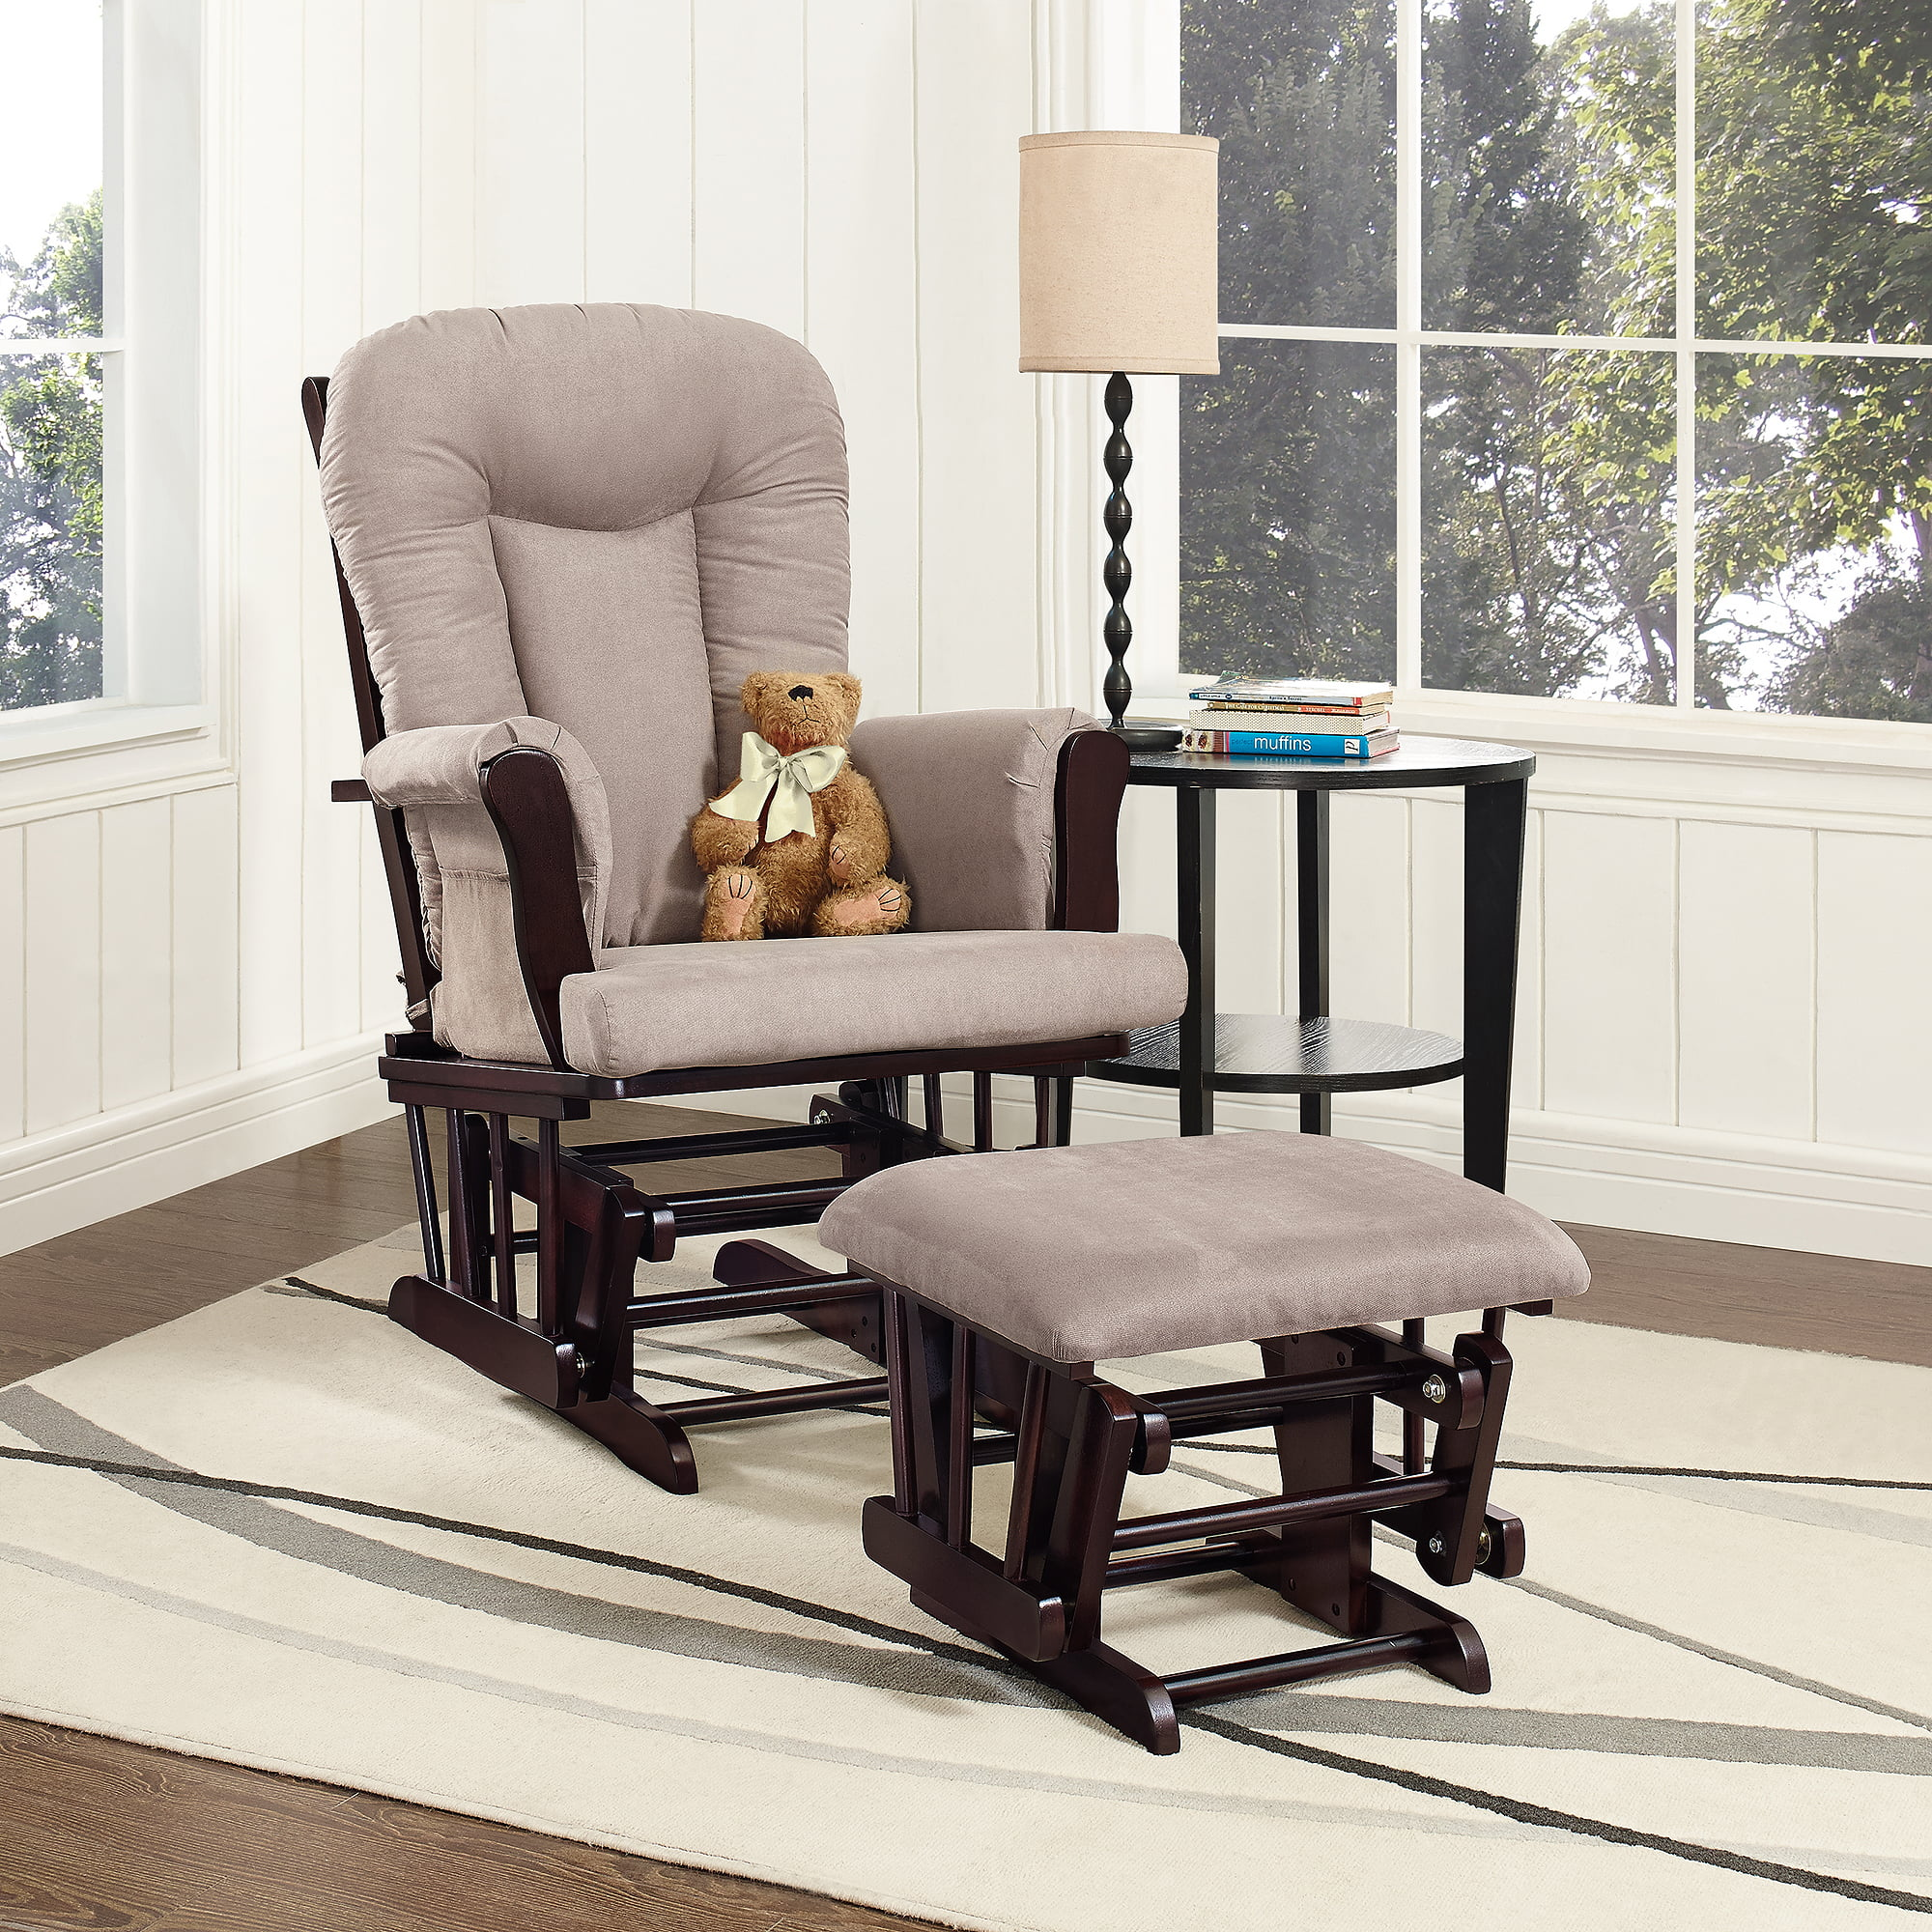 Storkcraft Malibu Glider and Ottoman Set Dark Brown Walmart